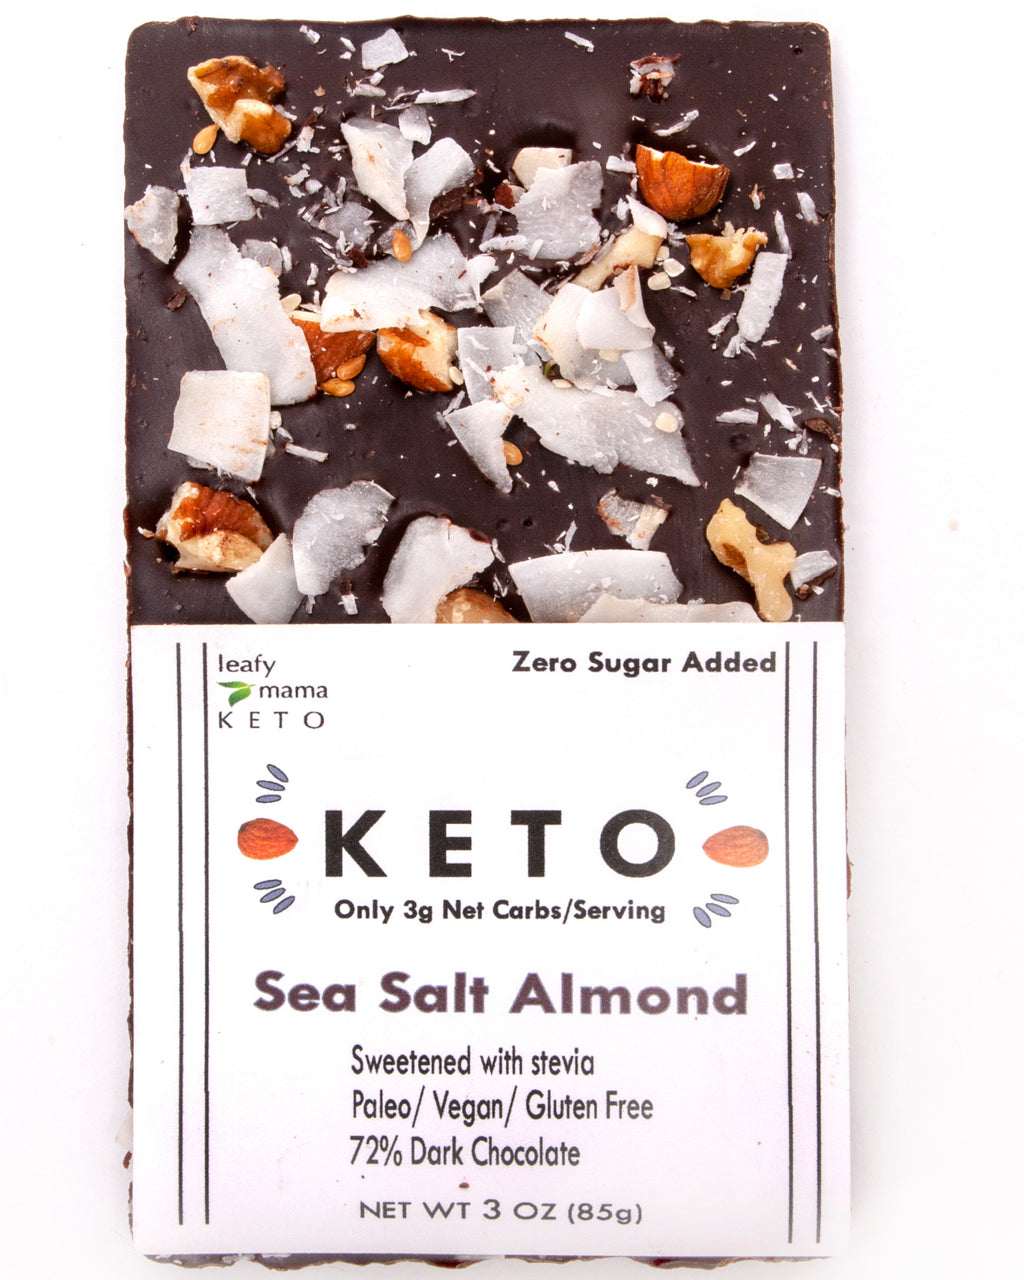 Keto Coconut and Nuts Bar